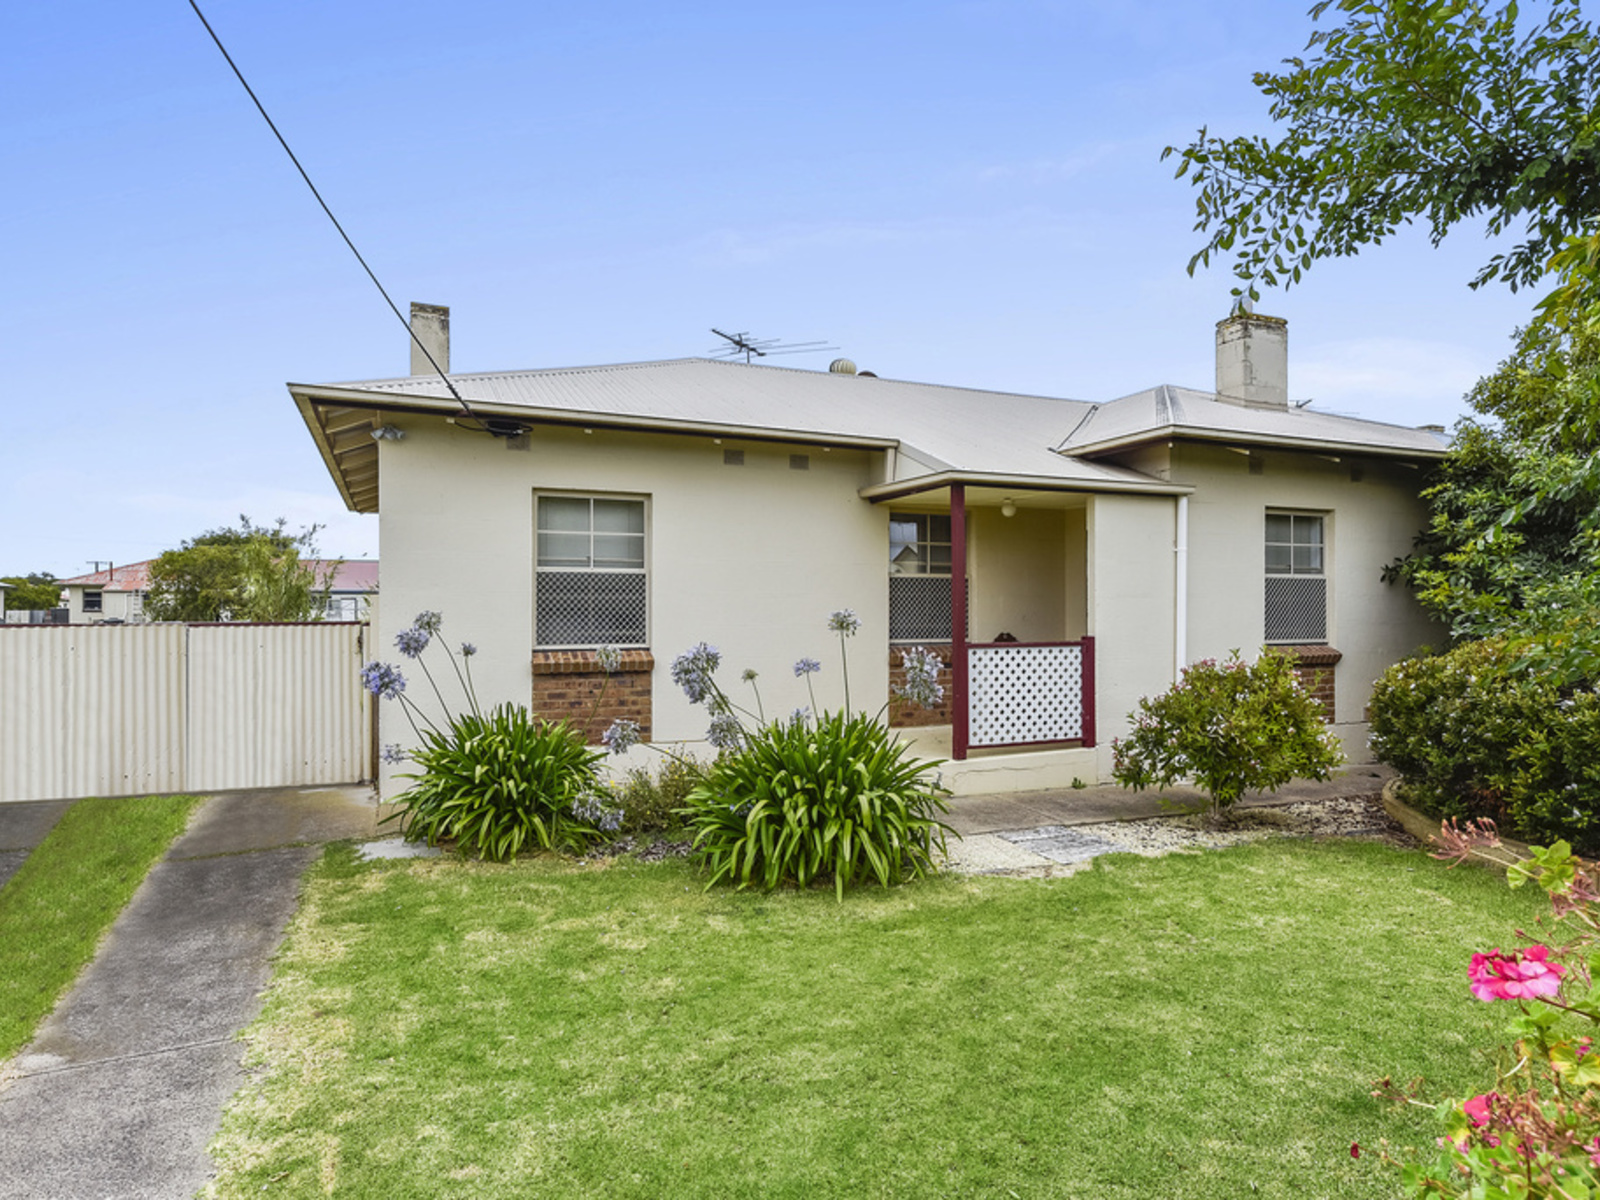 24 Playford Street, Millicent